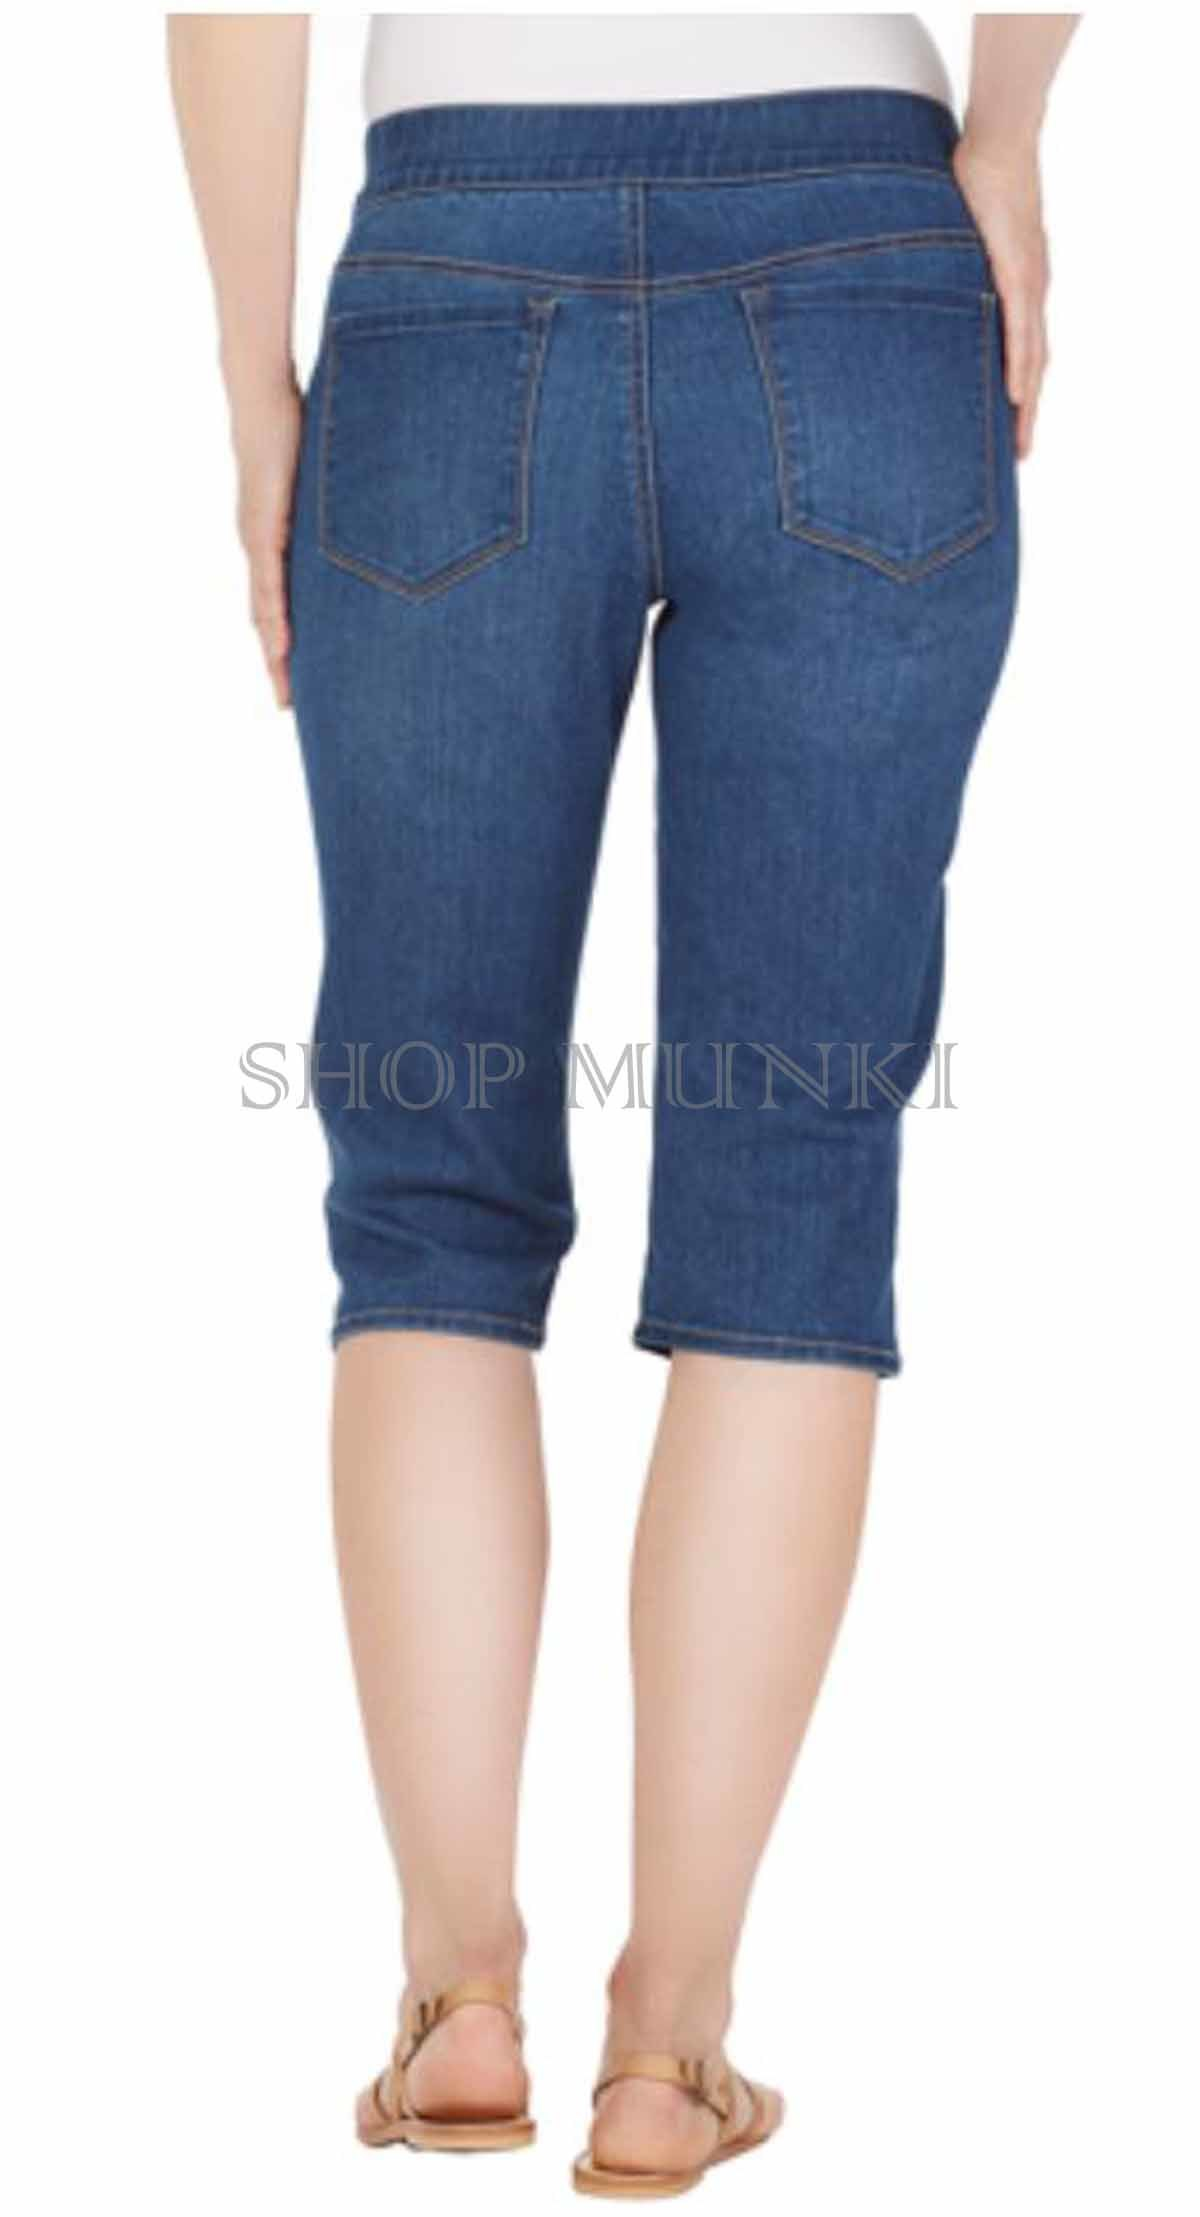 vanderbilt women Sears has women's shorts in an extended range of sizes, styles and colors stay cool and confident in a pair of shorts, skorts or capris.